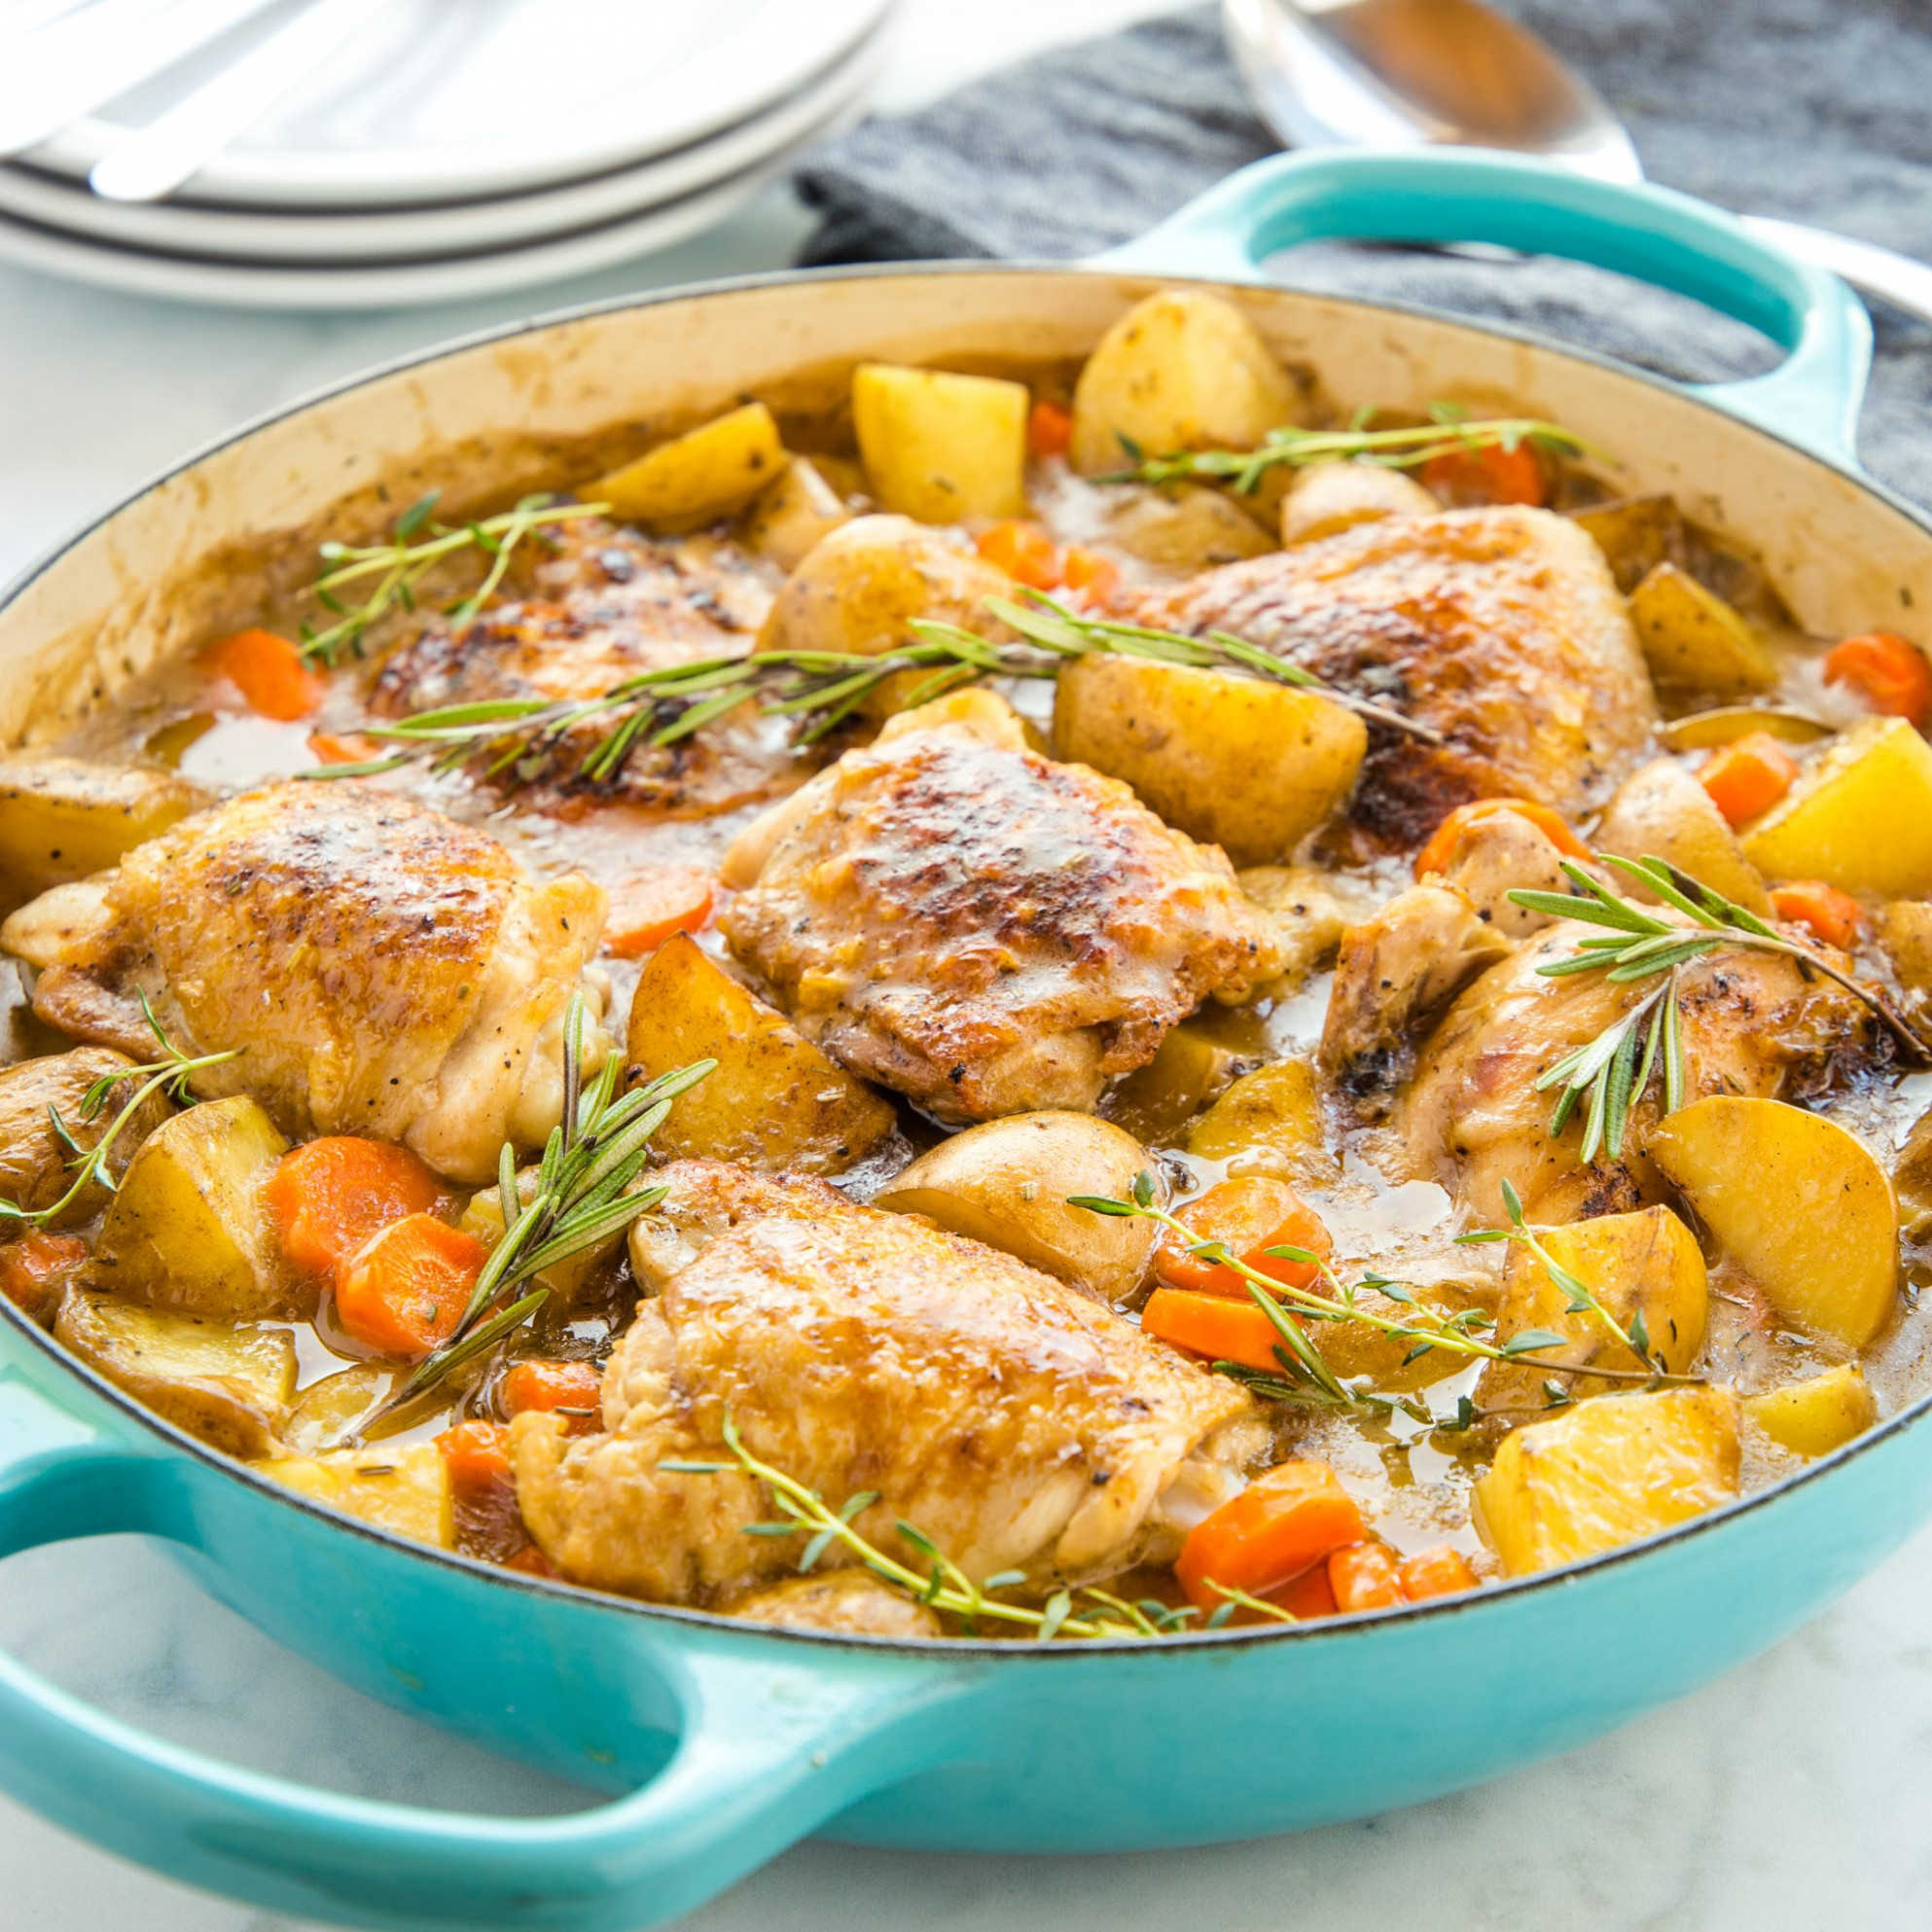 Easy One Pot Roasted Chicken Dinner - recipes with chicken